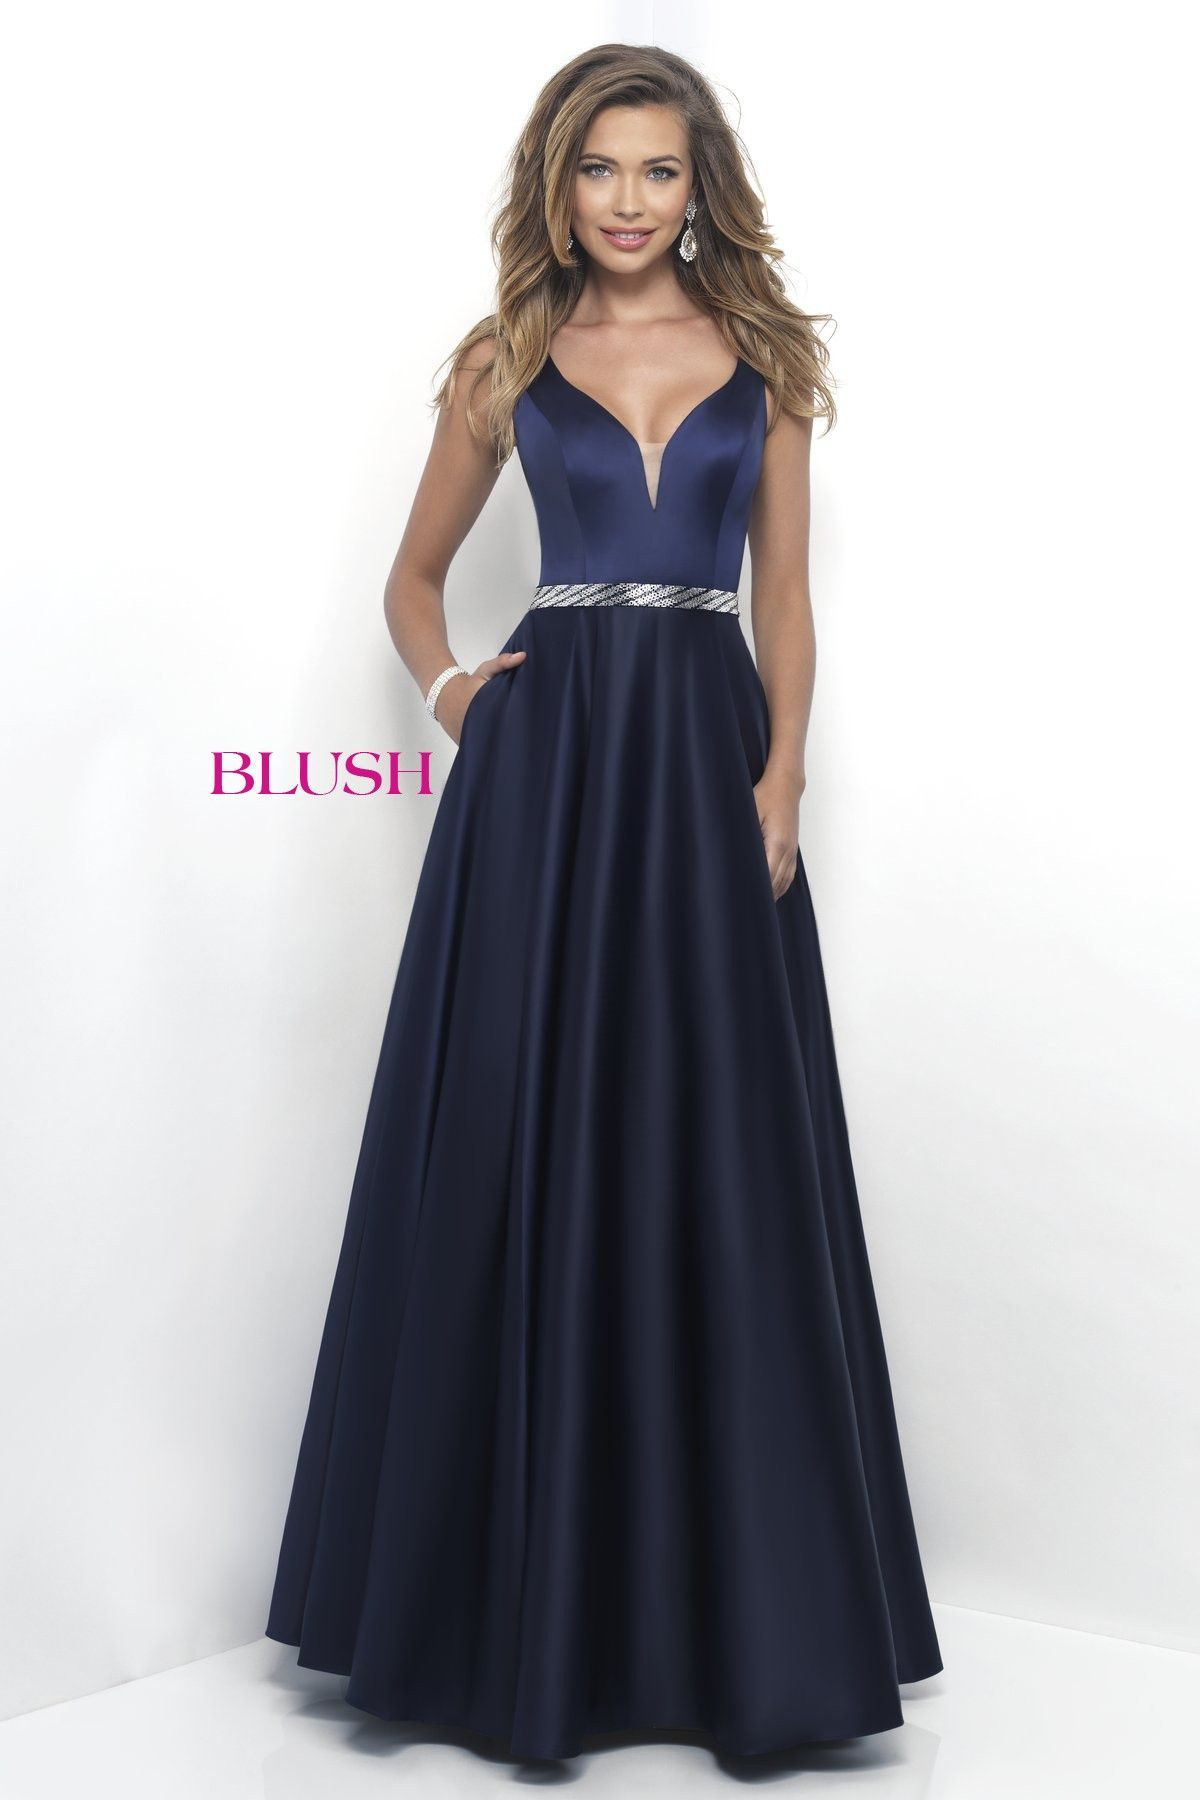 Blush prom navy vneck prom dress ball pinterest